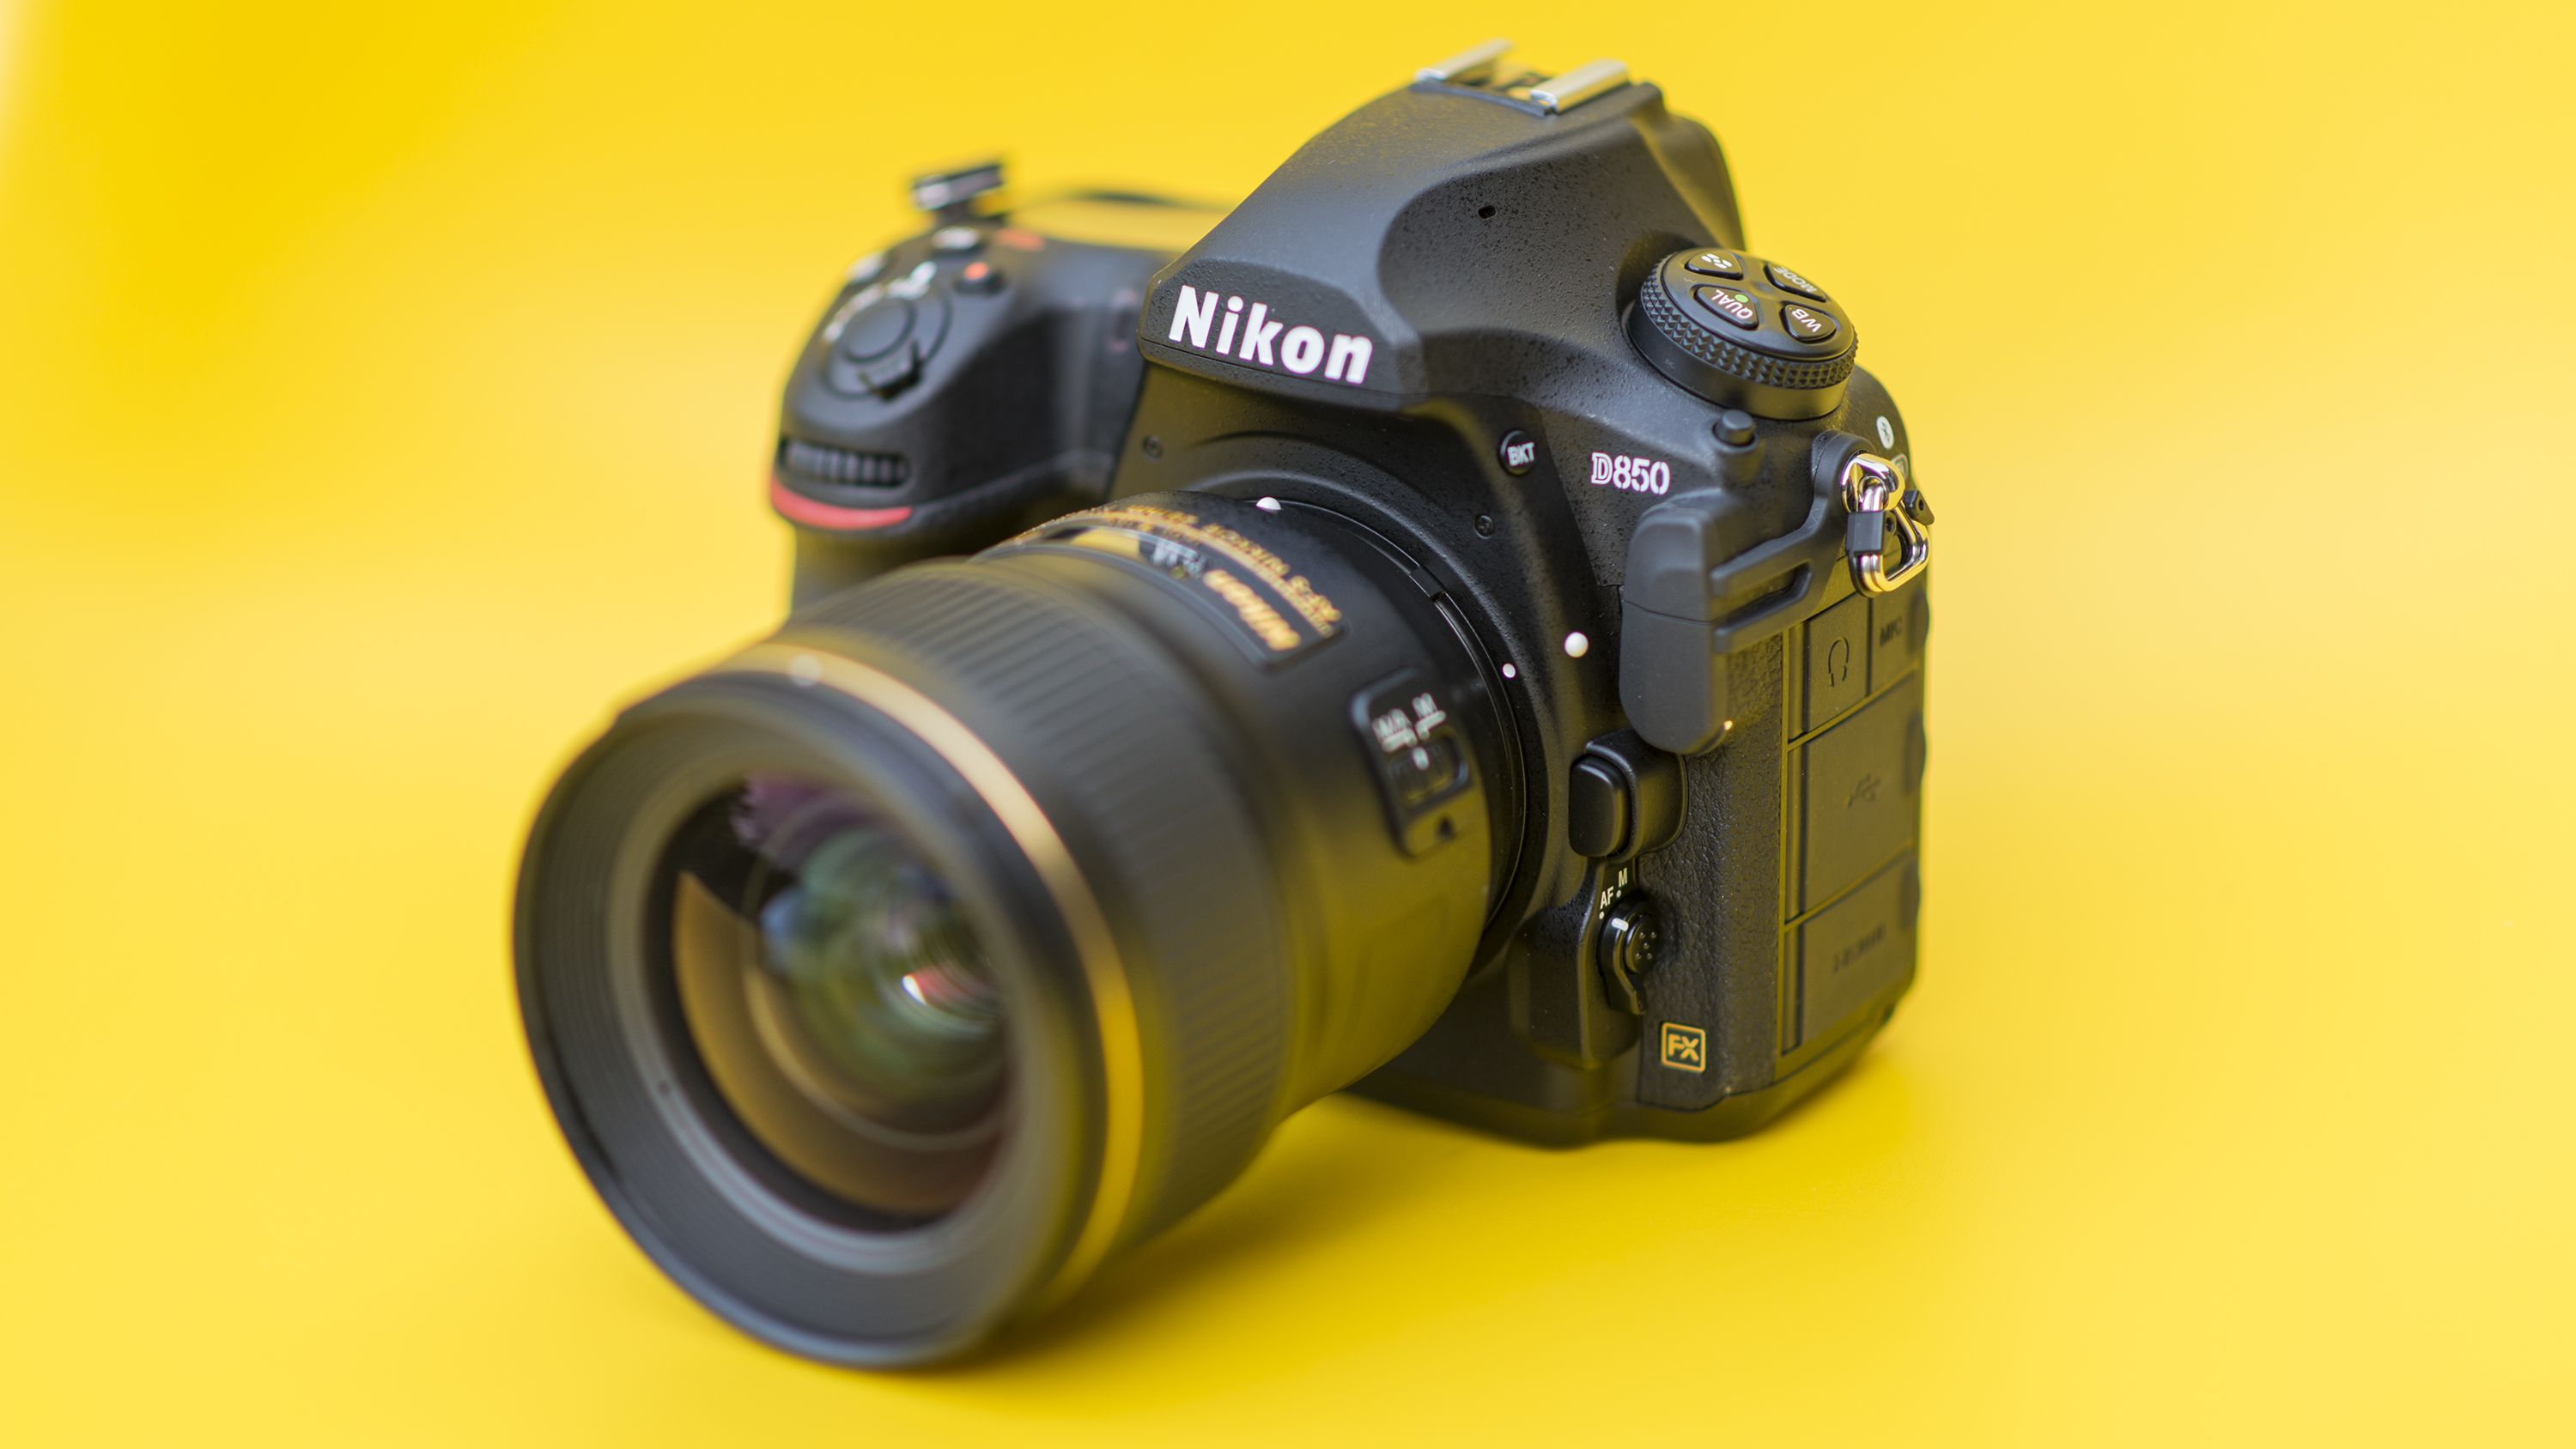 Best Camera 2020 The 10 Best Cameras You Can Buy Right Now Best Camera For Photography Best Digital Camera Best Camera